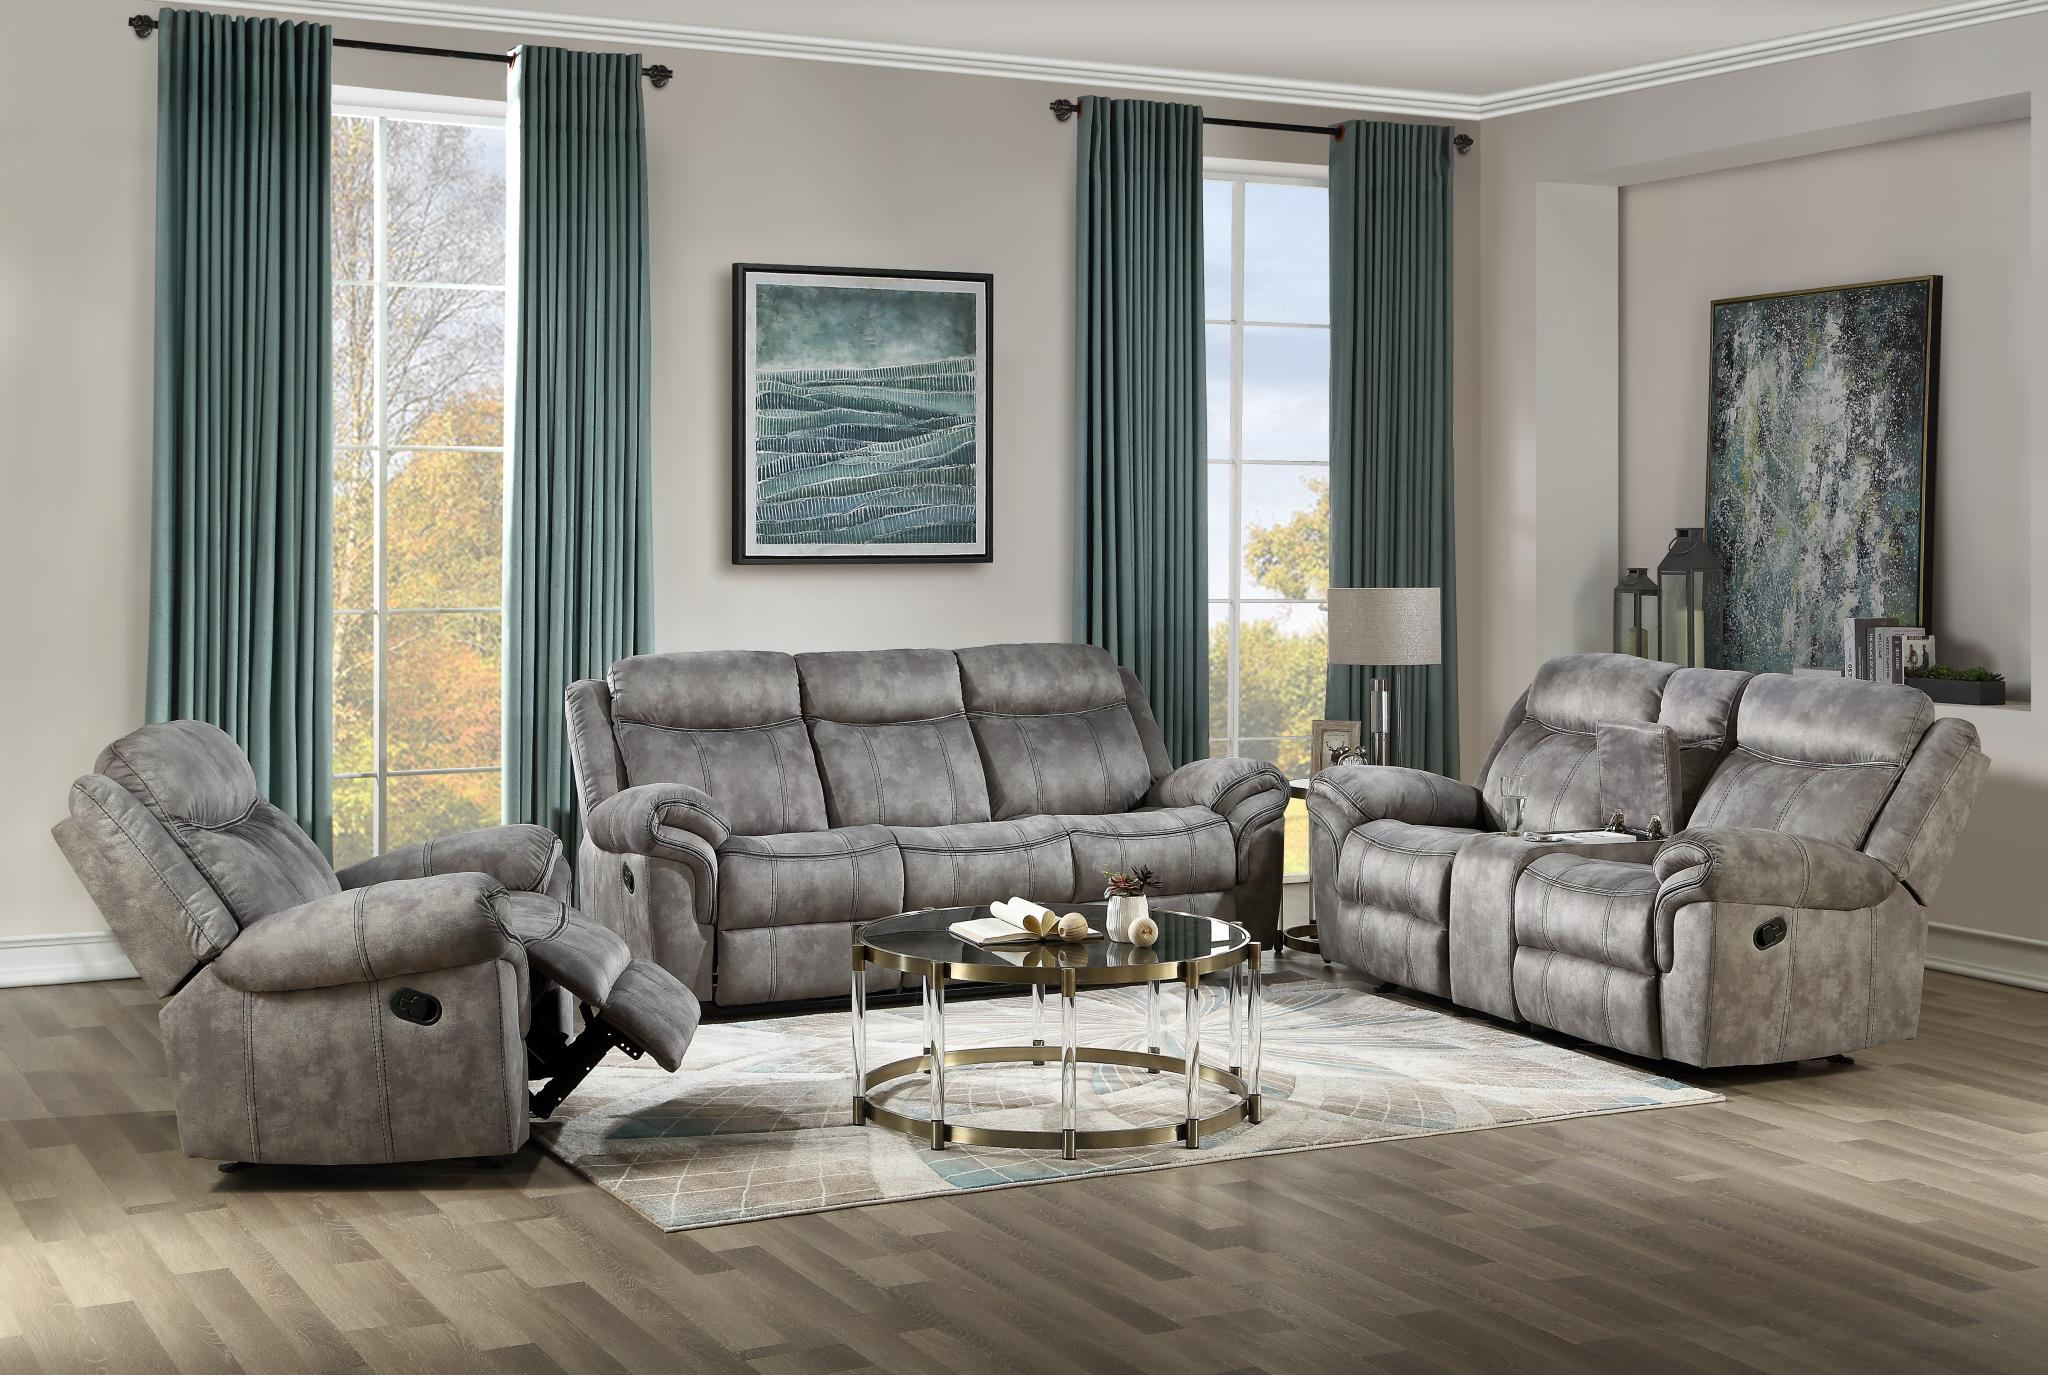 Two Tone Gray Complete Reclining Sofa Set